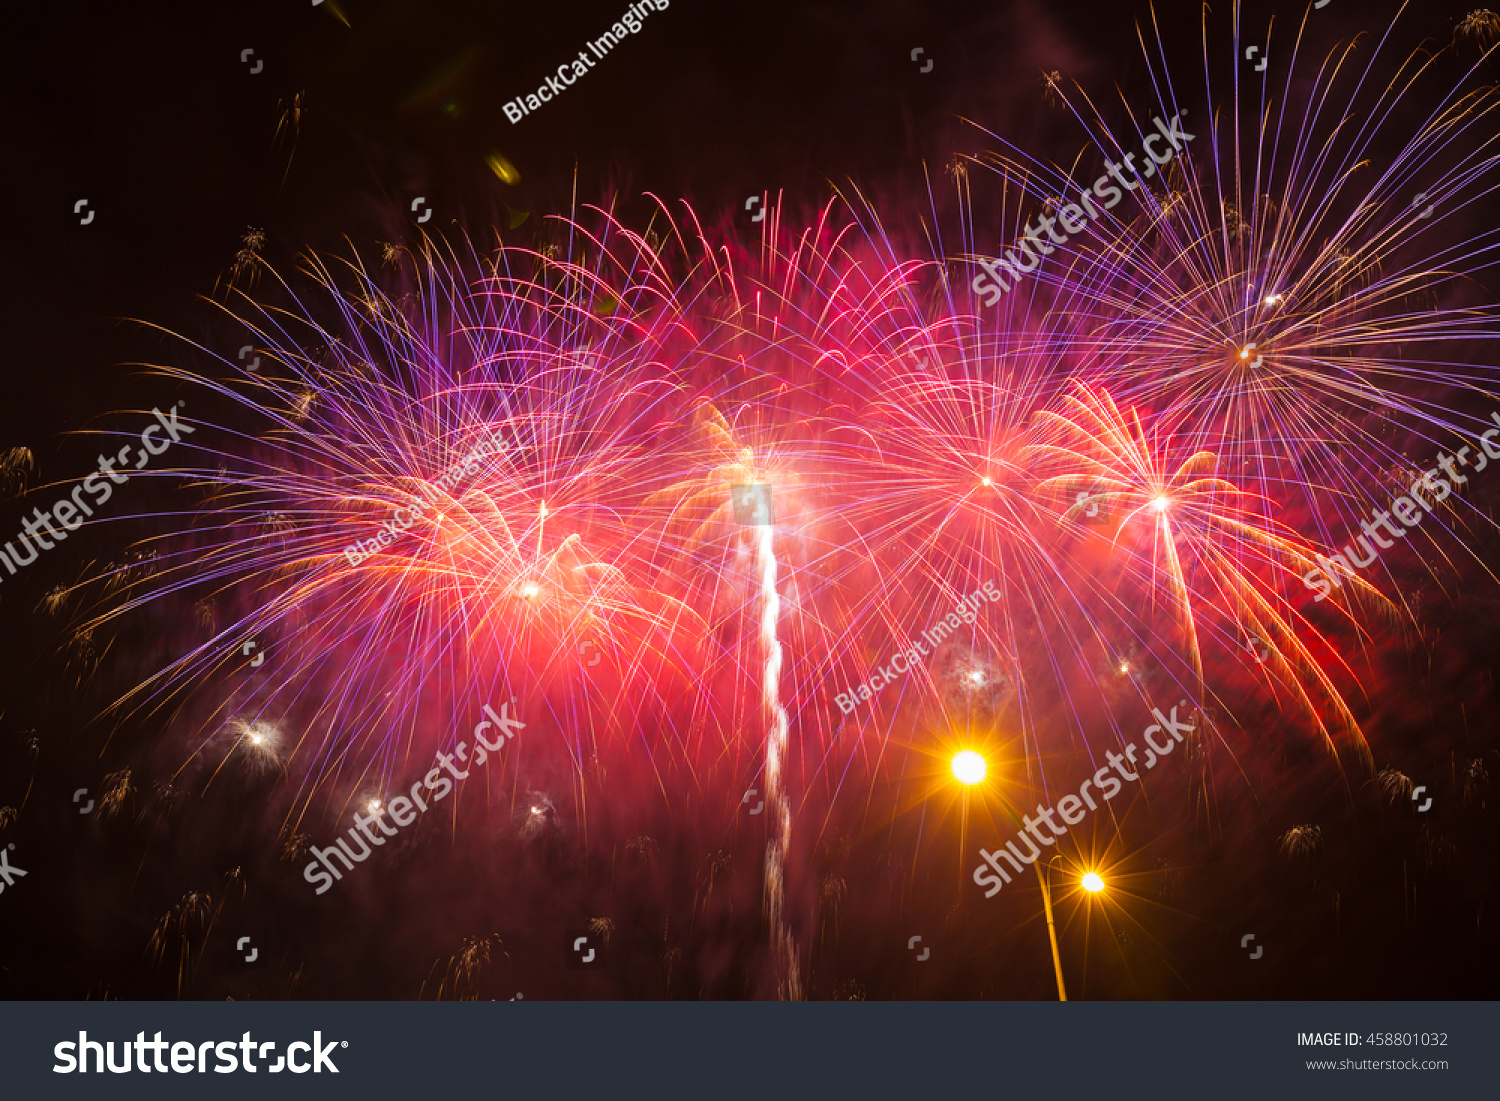 Red Fireworks Free Stock Photo: Multiple Red Purple Fireworks With Trails Stock Photo